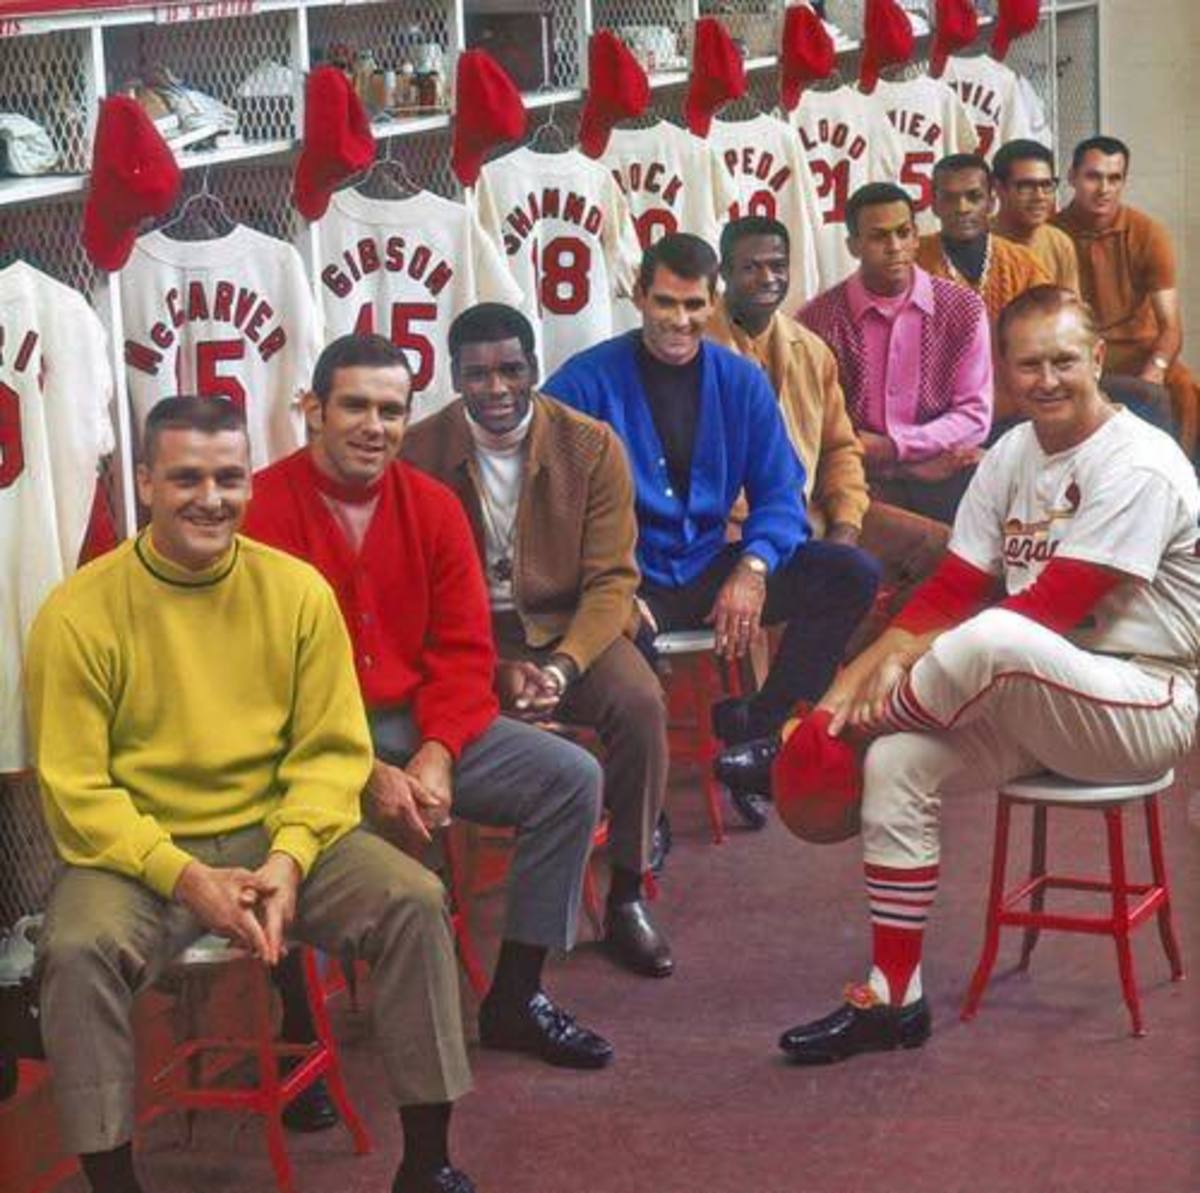 Some of the '68 Cards: Maris, McCarver, Gibson, Shannon, Brock, Cepeda, Flood, Javier and Maxvill with Mgr. Red Schoendienst.